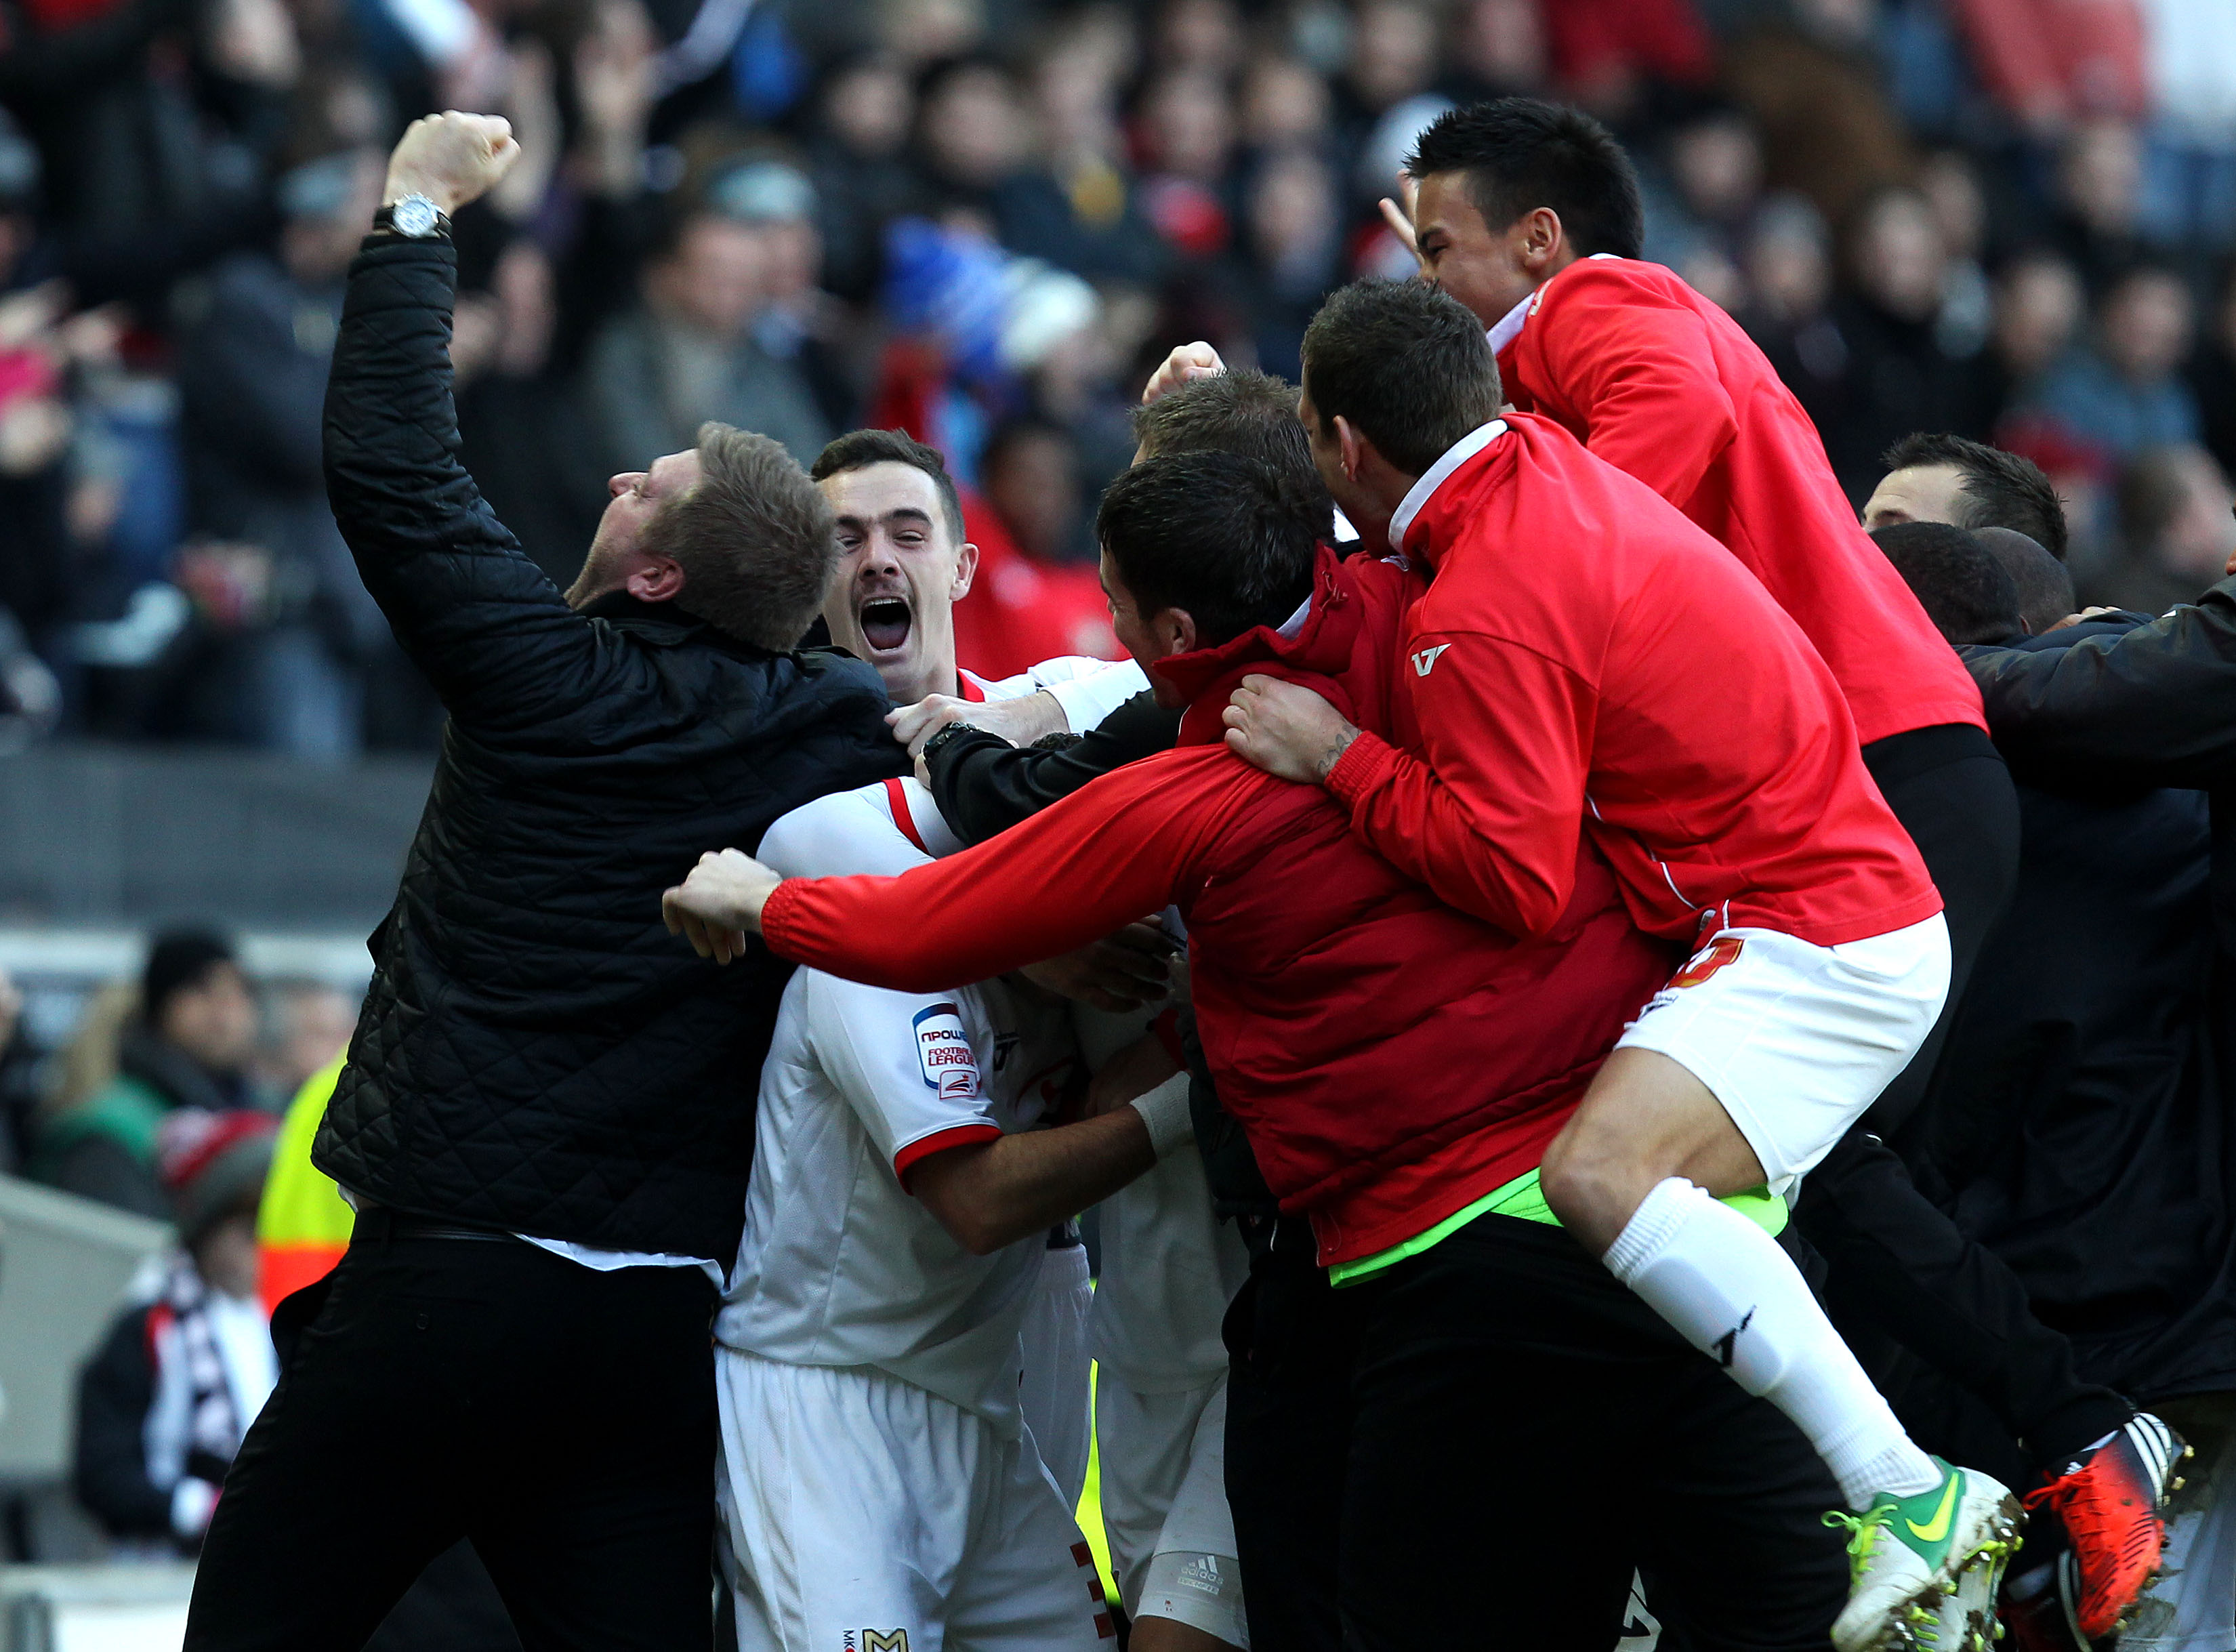 Jon Otsemobor of MK Dons is mobbed by team mates - FA Cup